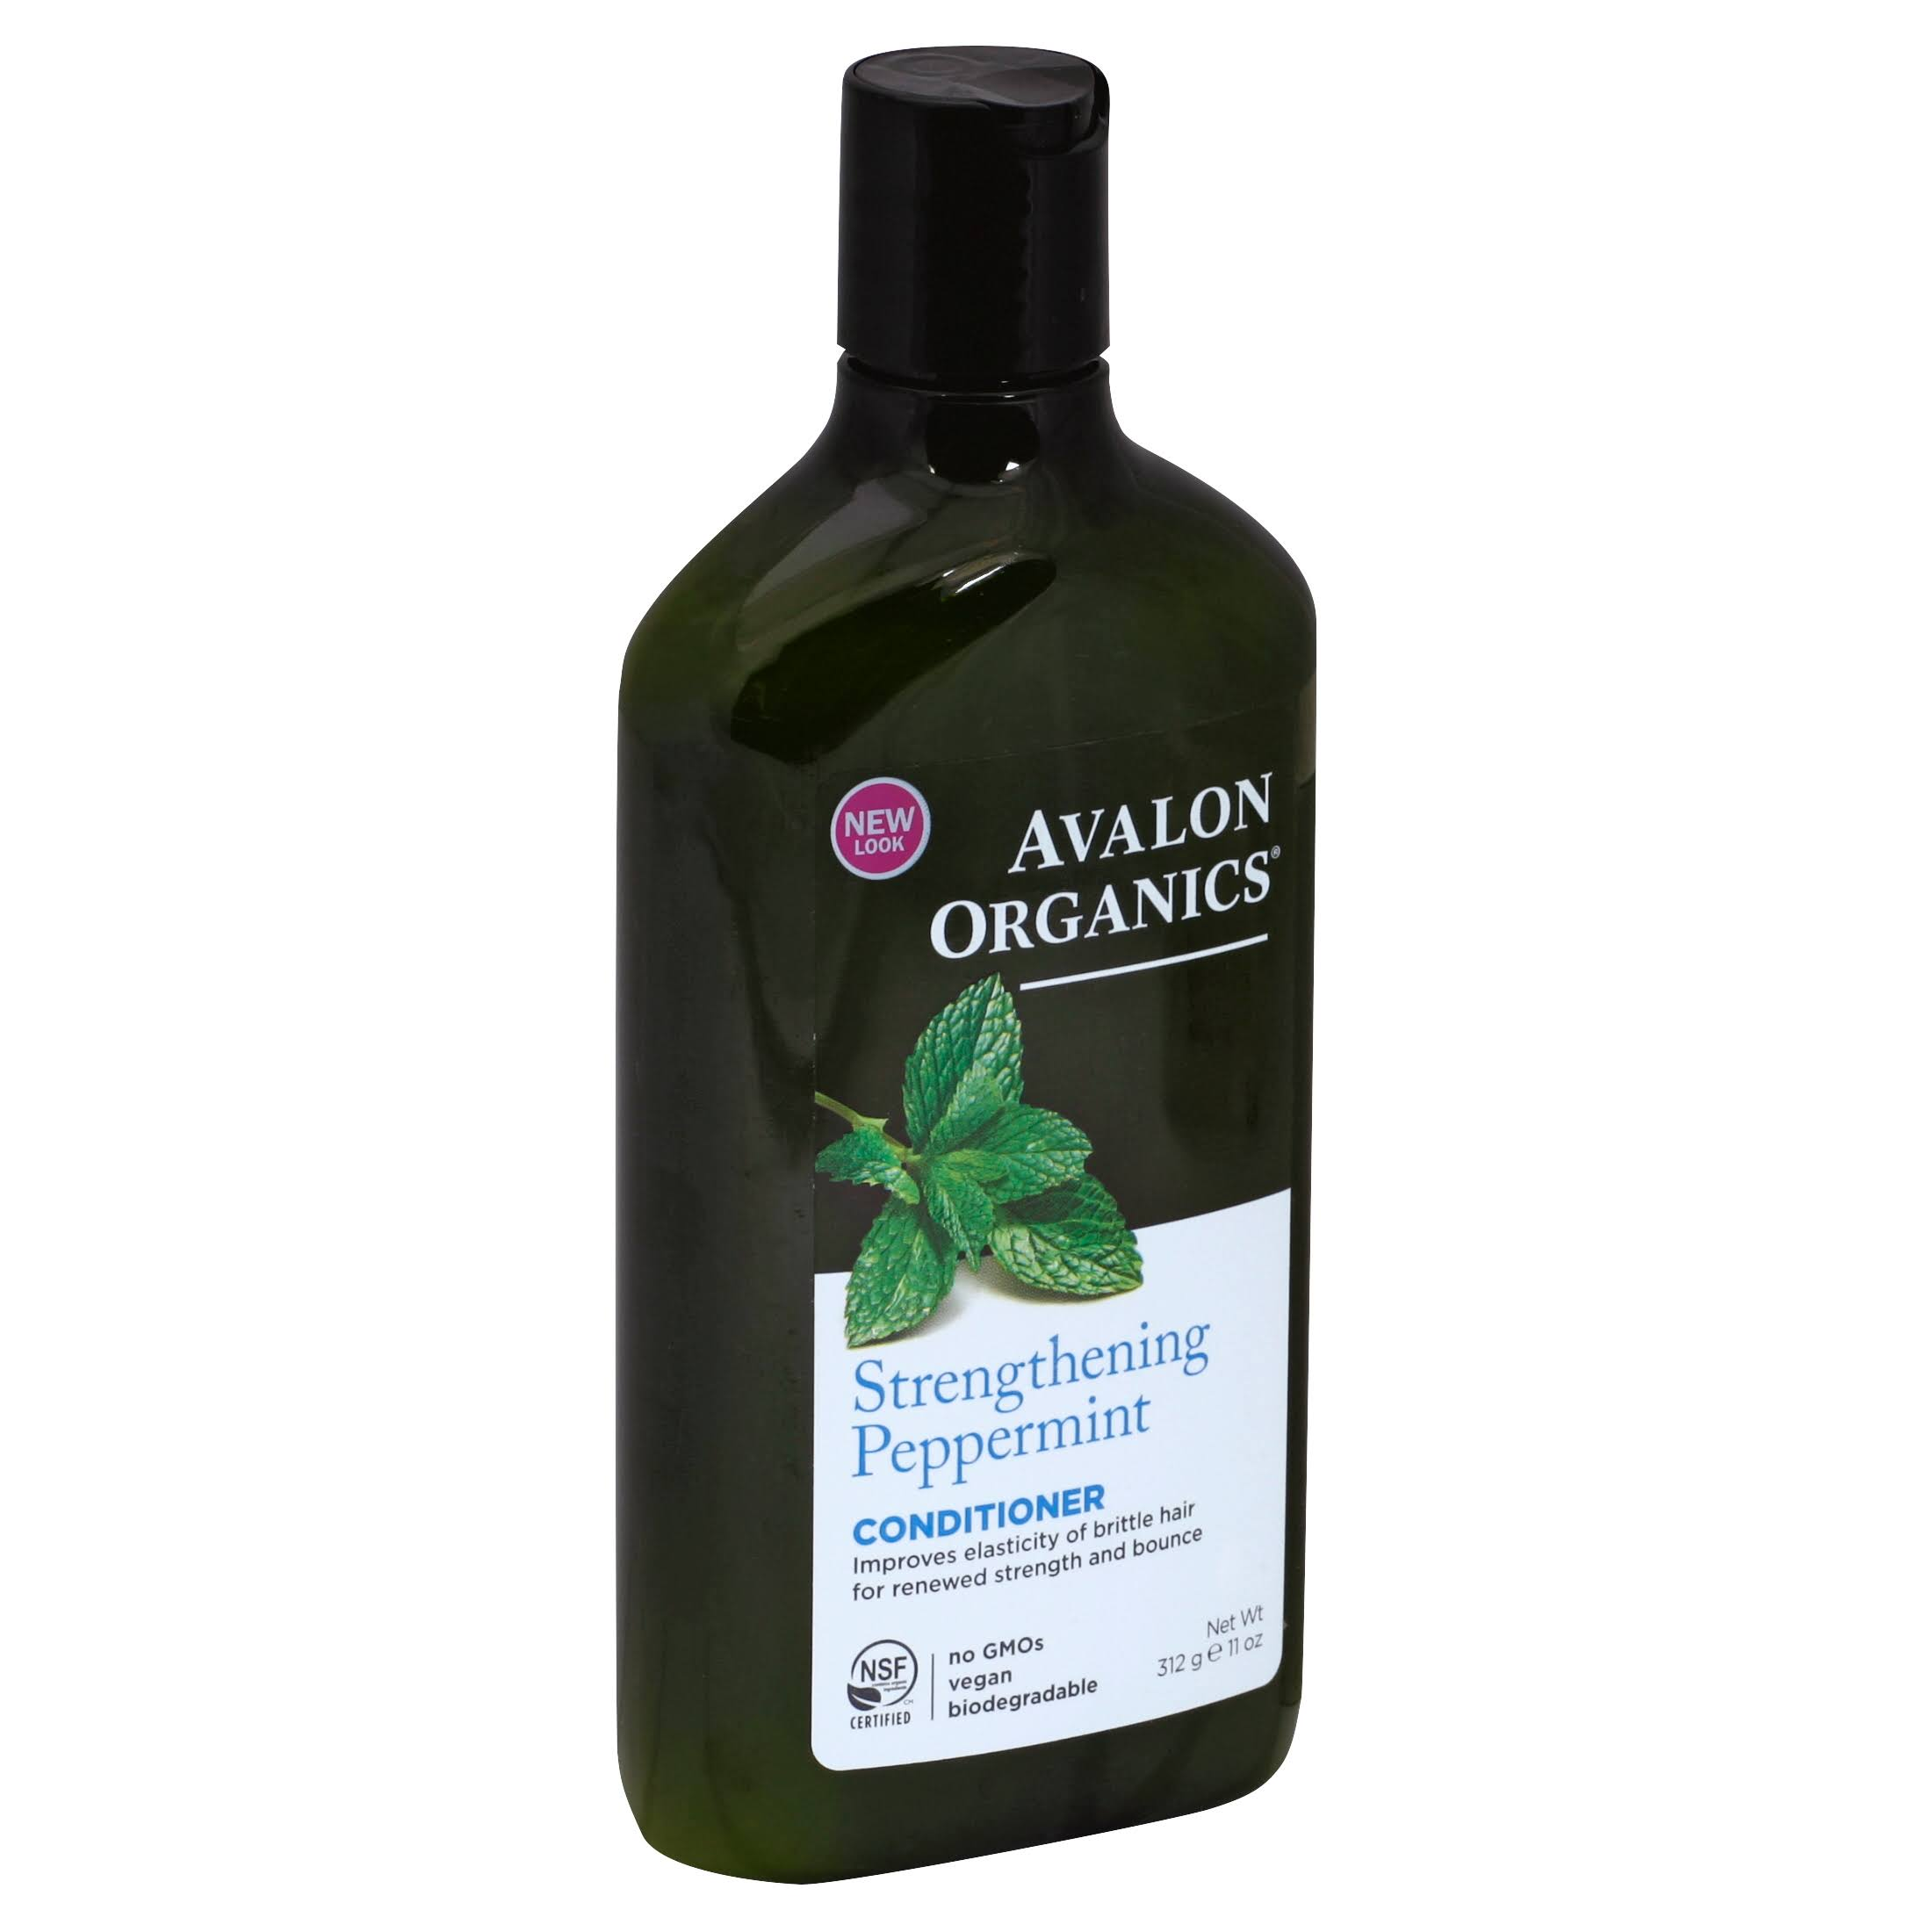 Avalon Organics Strengthening Peppermint Conditioner - 325ml